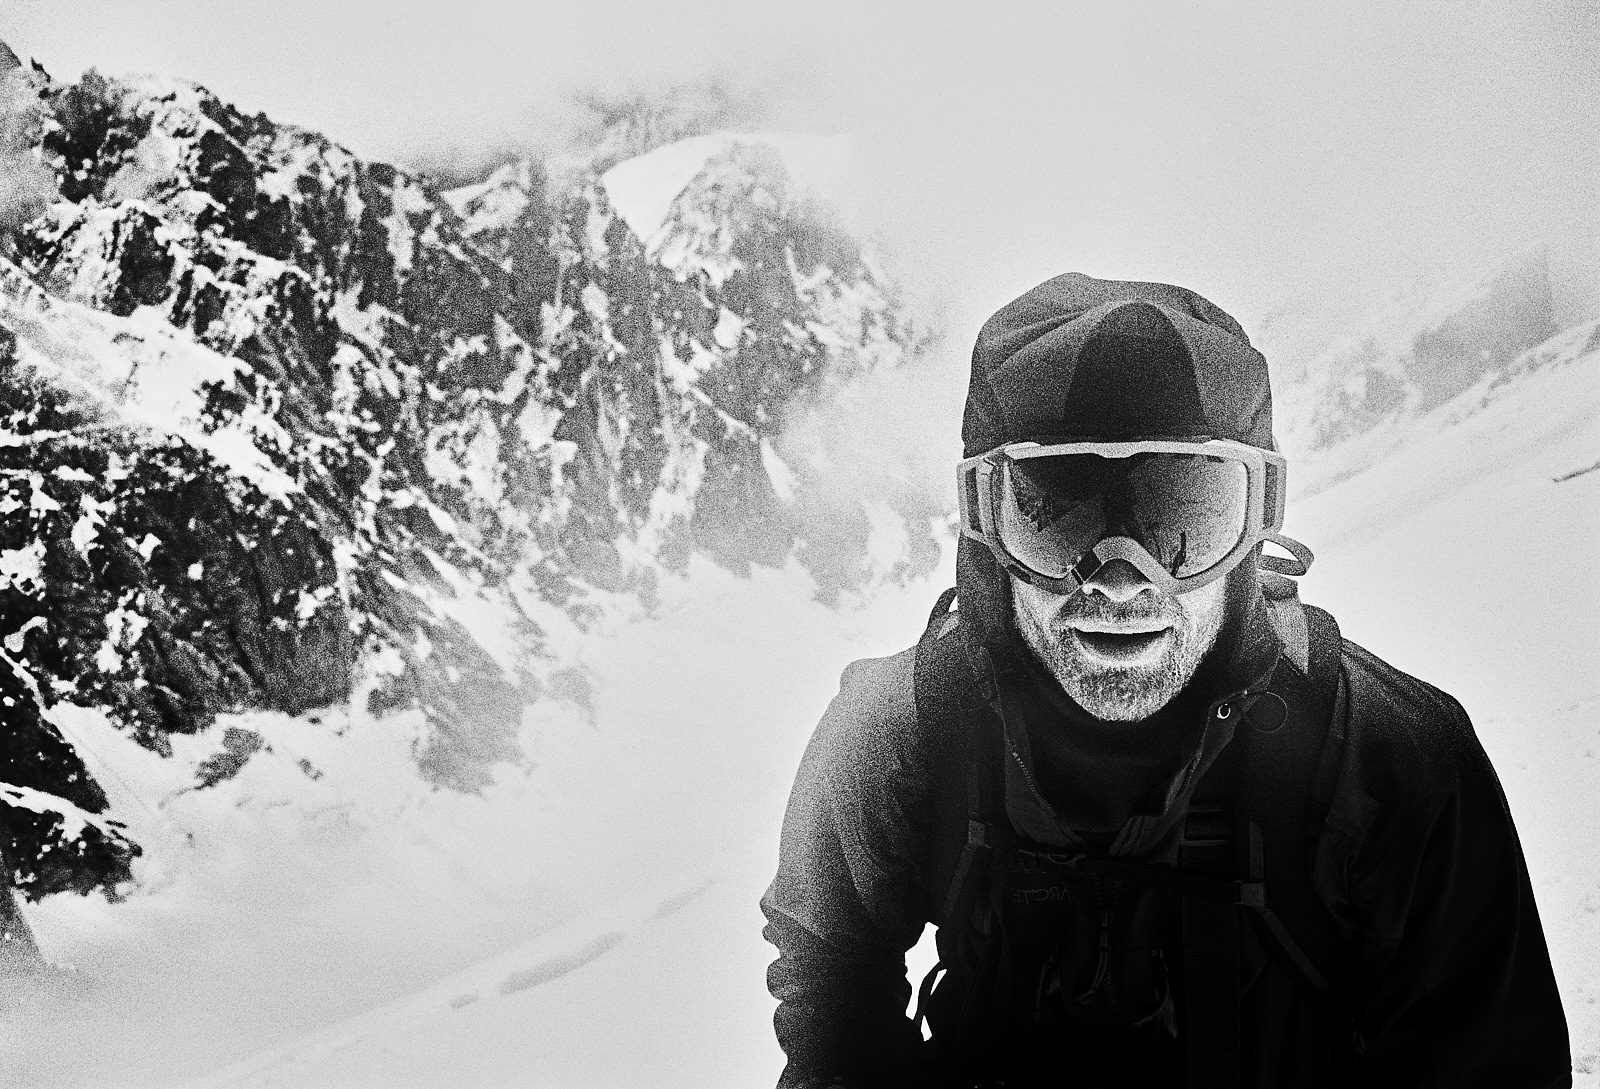 2013, Georgia. Mountain Portrait of Trevor Hunt, Canadian Steep Skiing legend. Chatyn-Tau (4310m) Summit, May 2013. Contax T3, Heliopan yellow filter and Ilford FP4+ (in ID-11 stock). Flextight X1 scan.